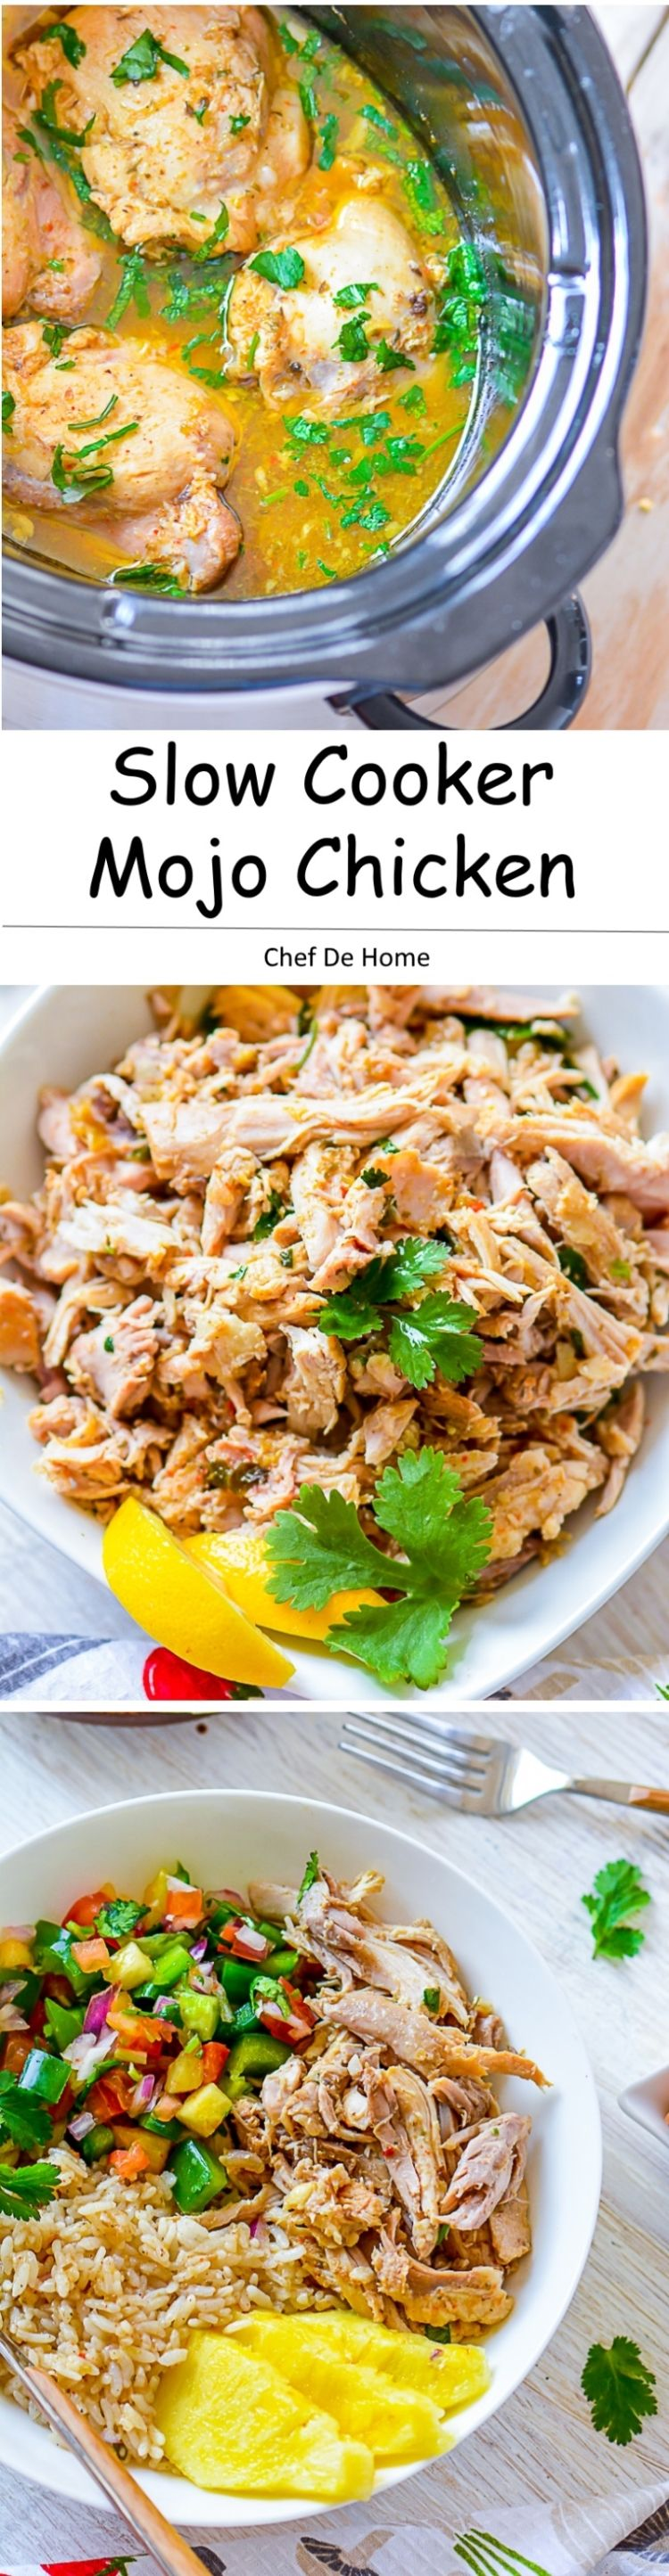 Slow Cooker Mojo Chicken and Rice Bowl Recipe | ChefDeHome.com